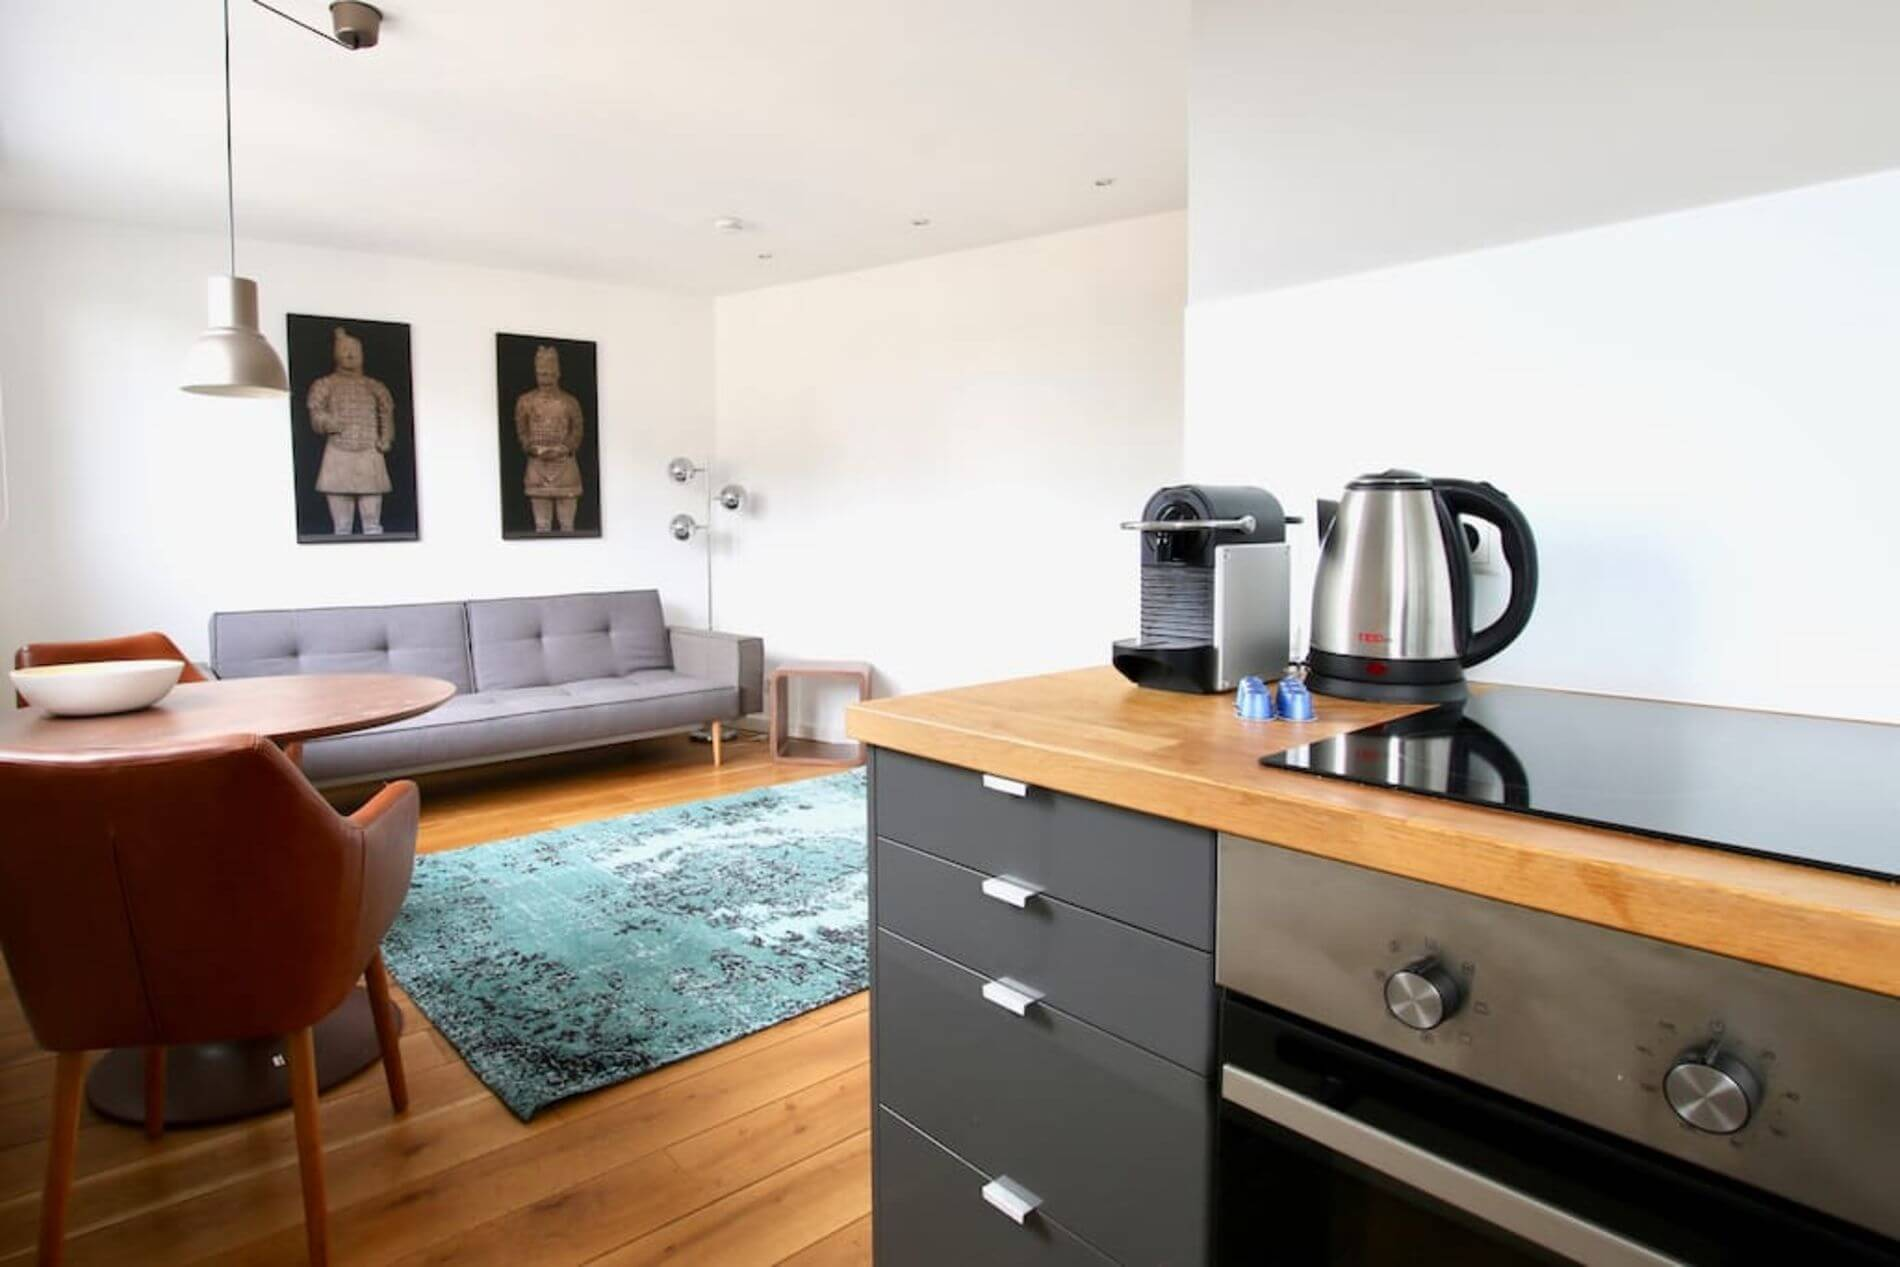 Attic flat for rent in Cologne